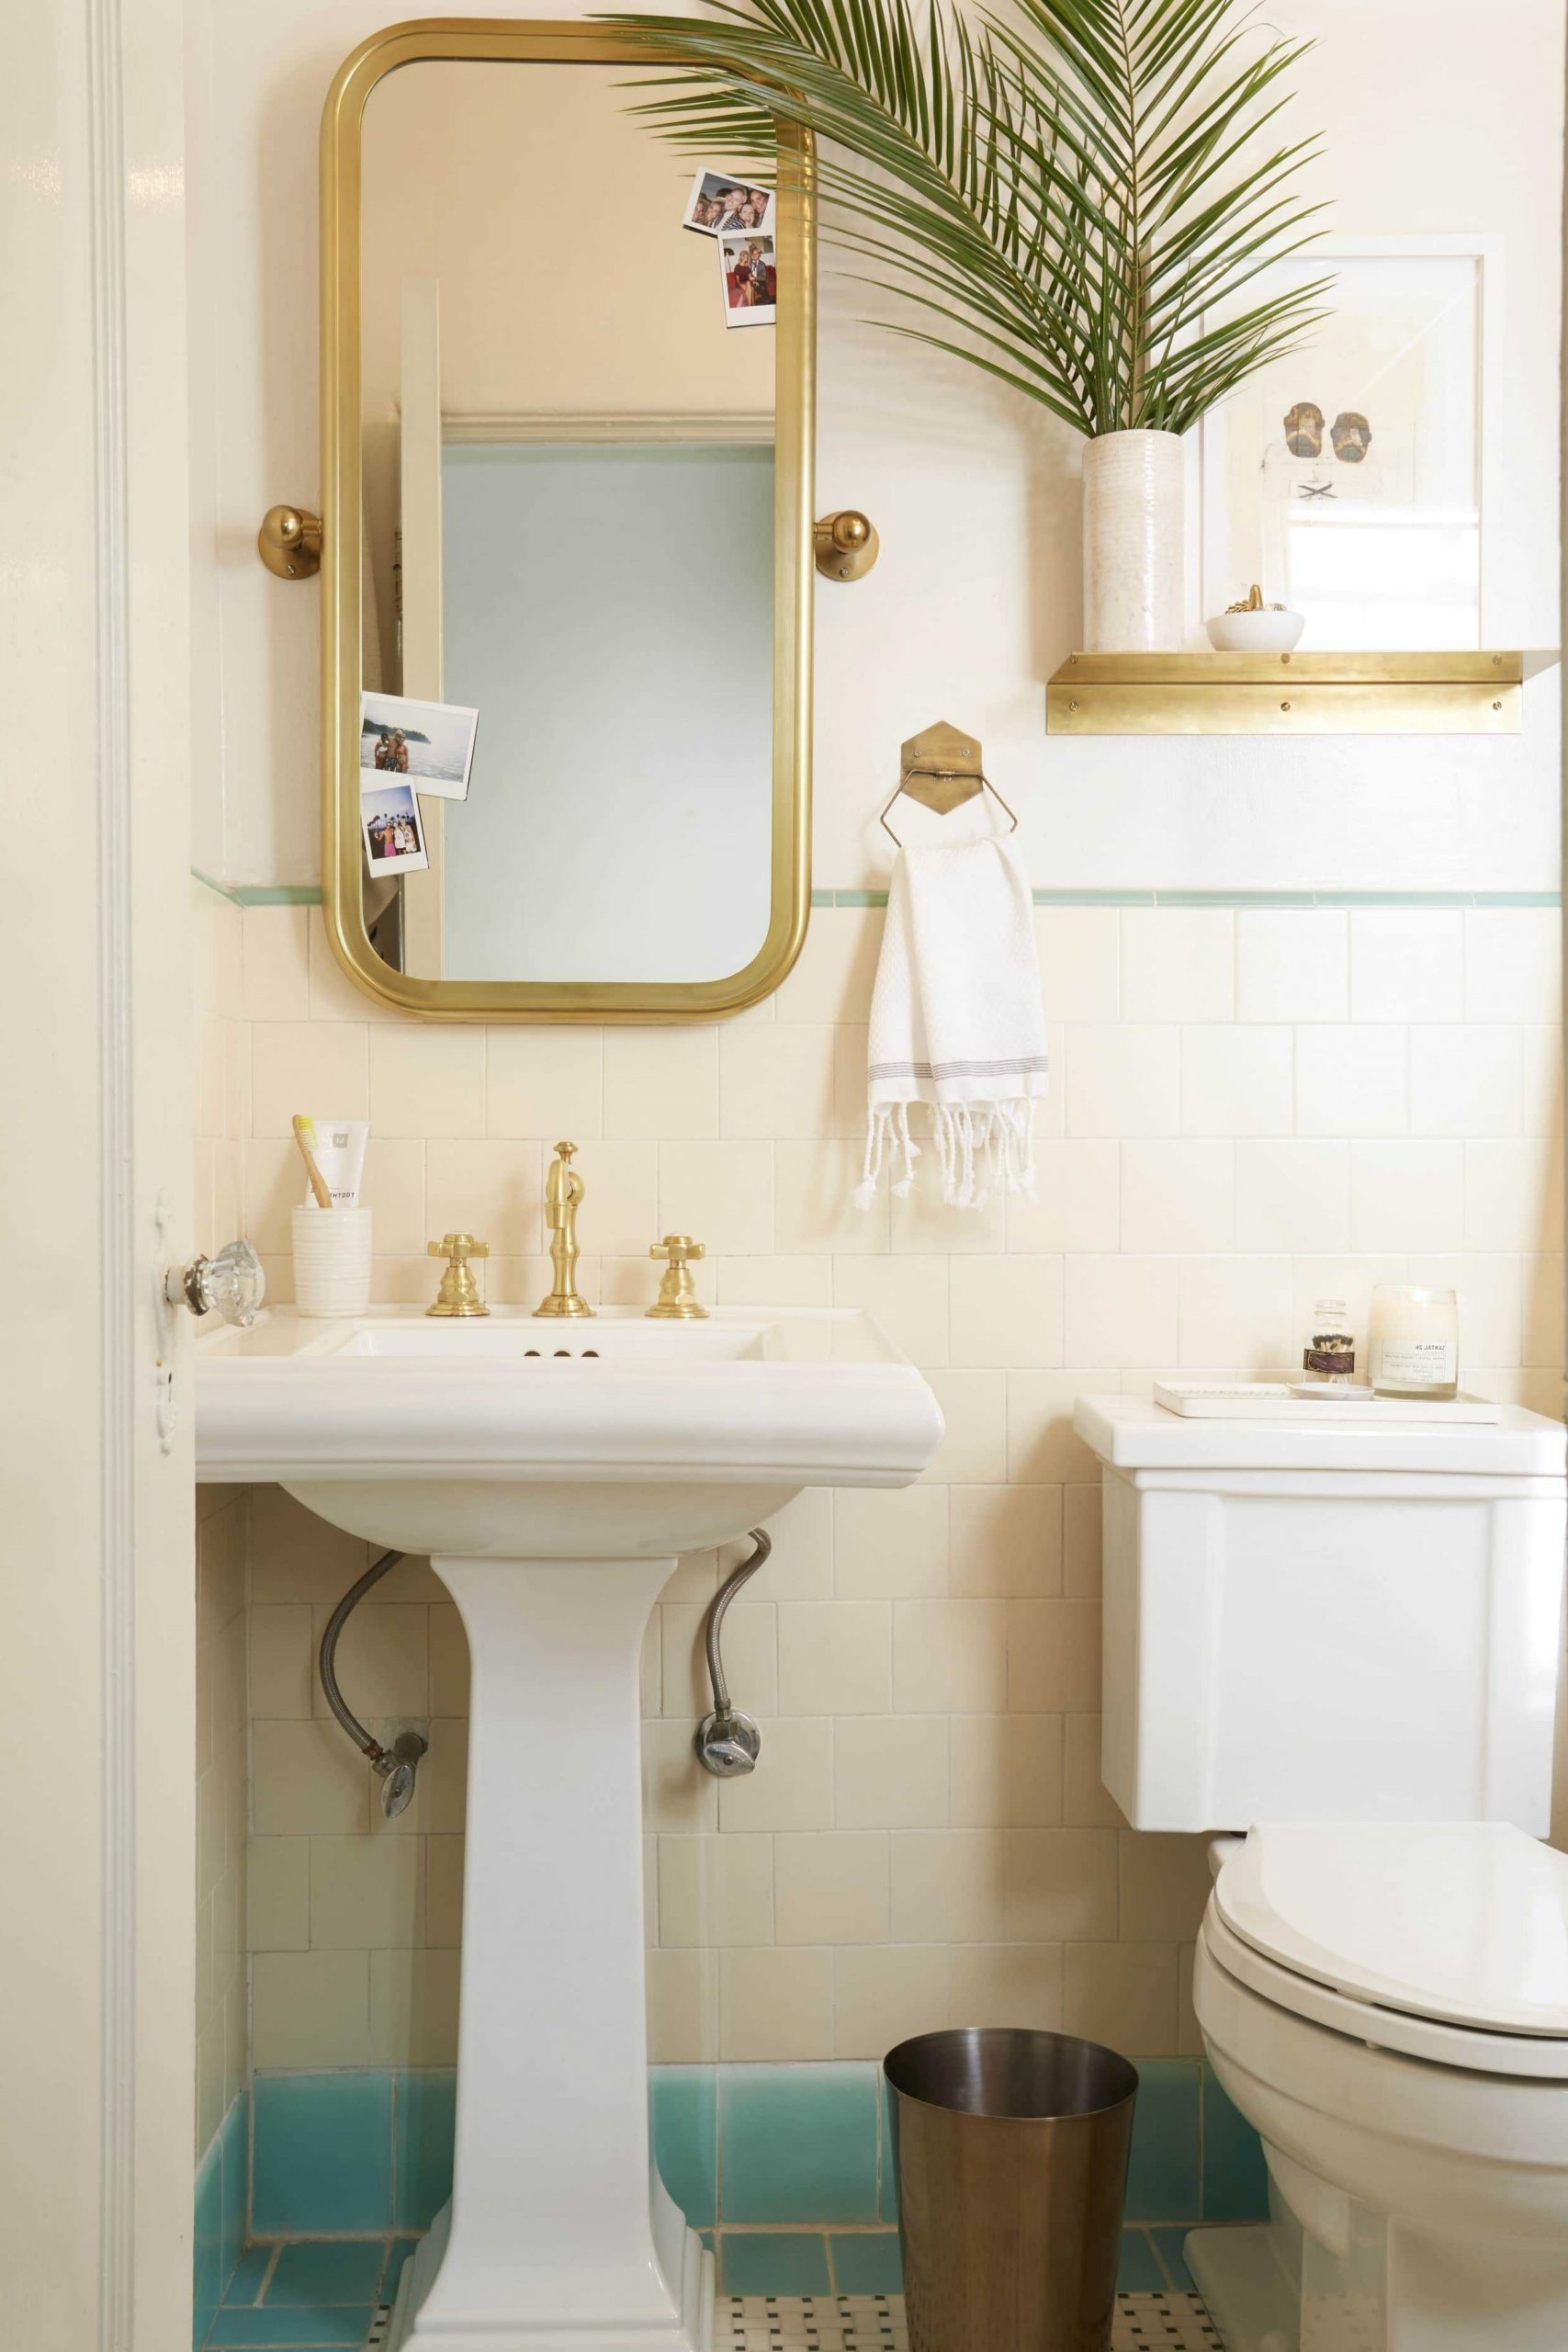 If You Think Your Rental Bathroom Is Beyond Help, This Post 10+ Tiny Rental Bathroom Ideas